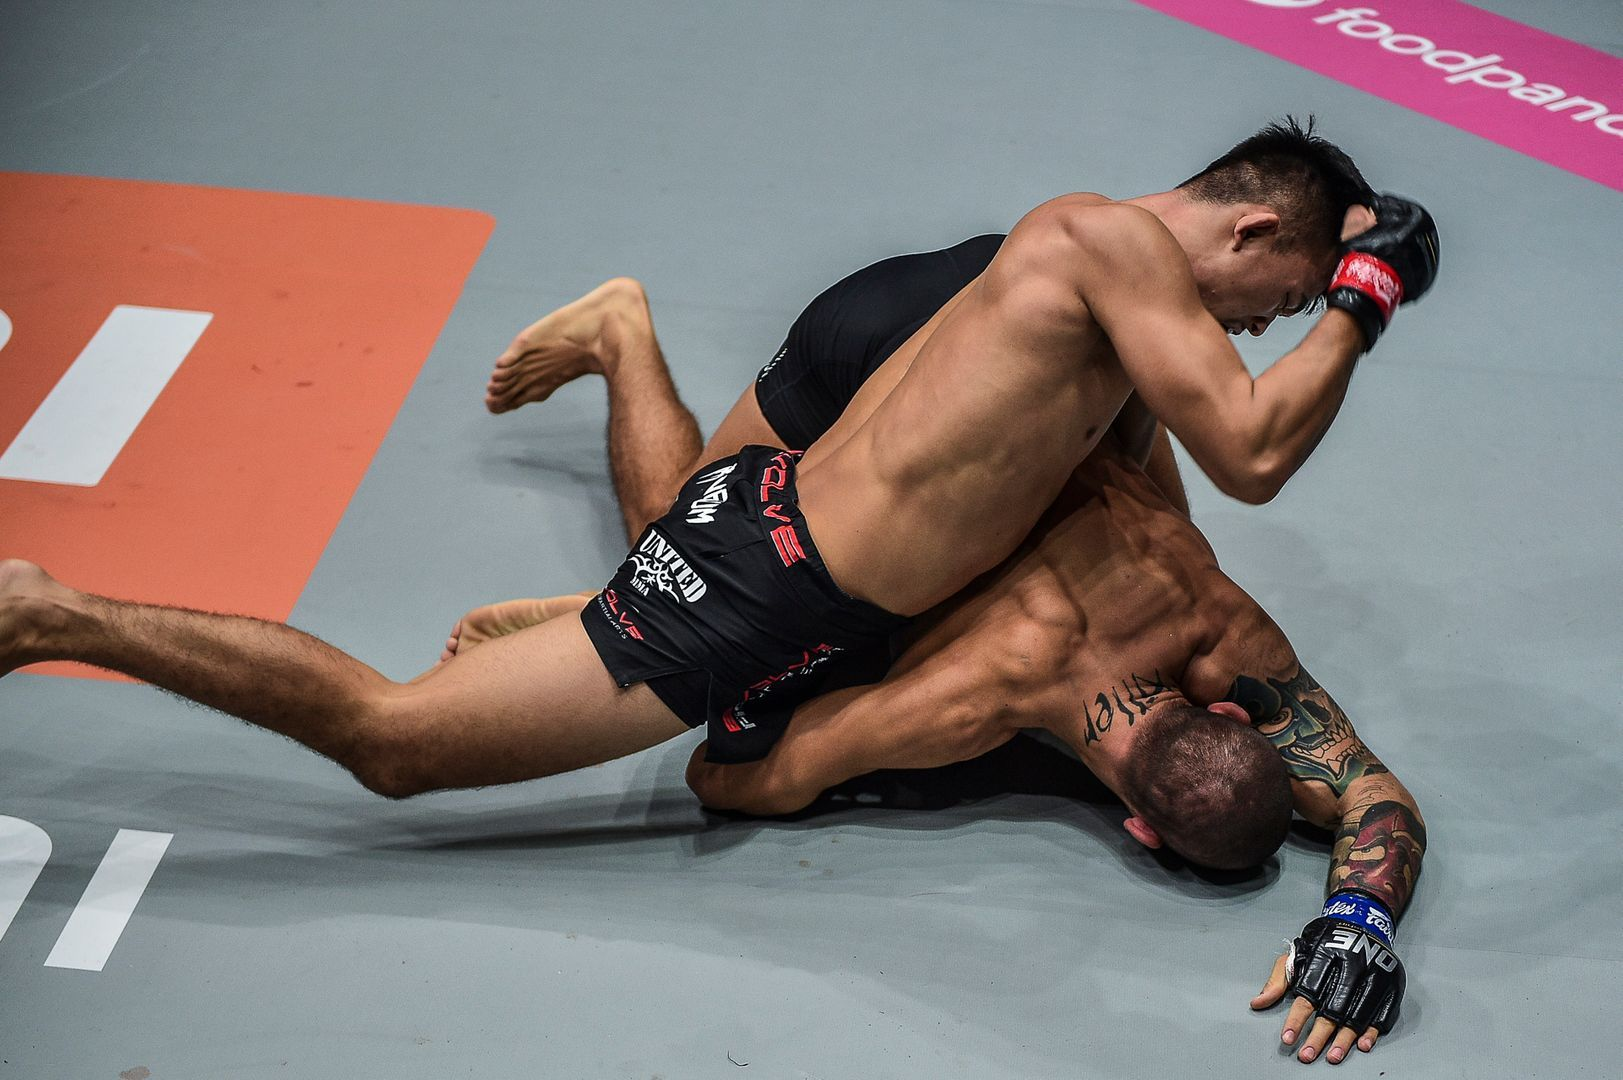 Christian Lee fights Iuri Lapicus at ONE: INSIDE THE MATRIX on Friday, 30 October